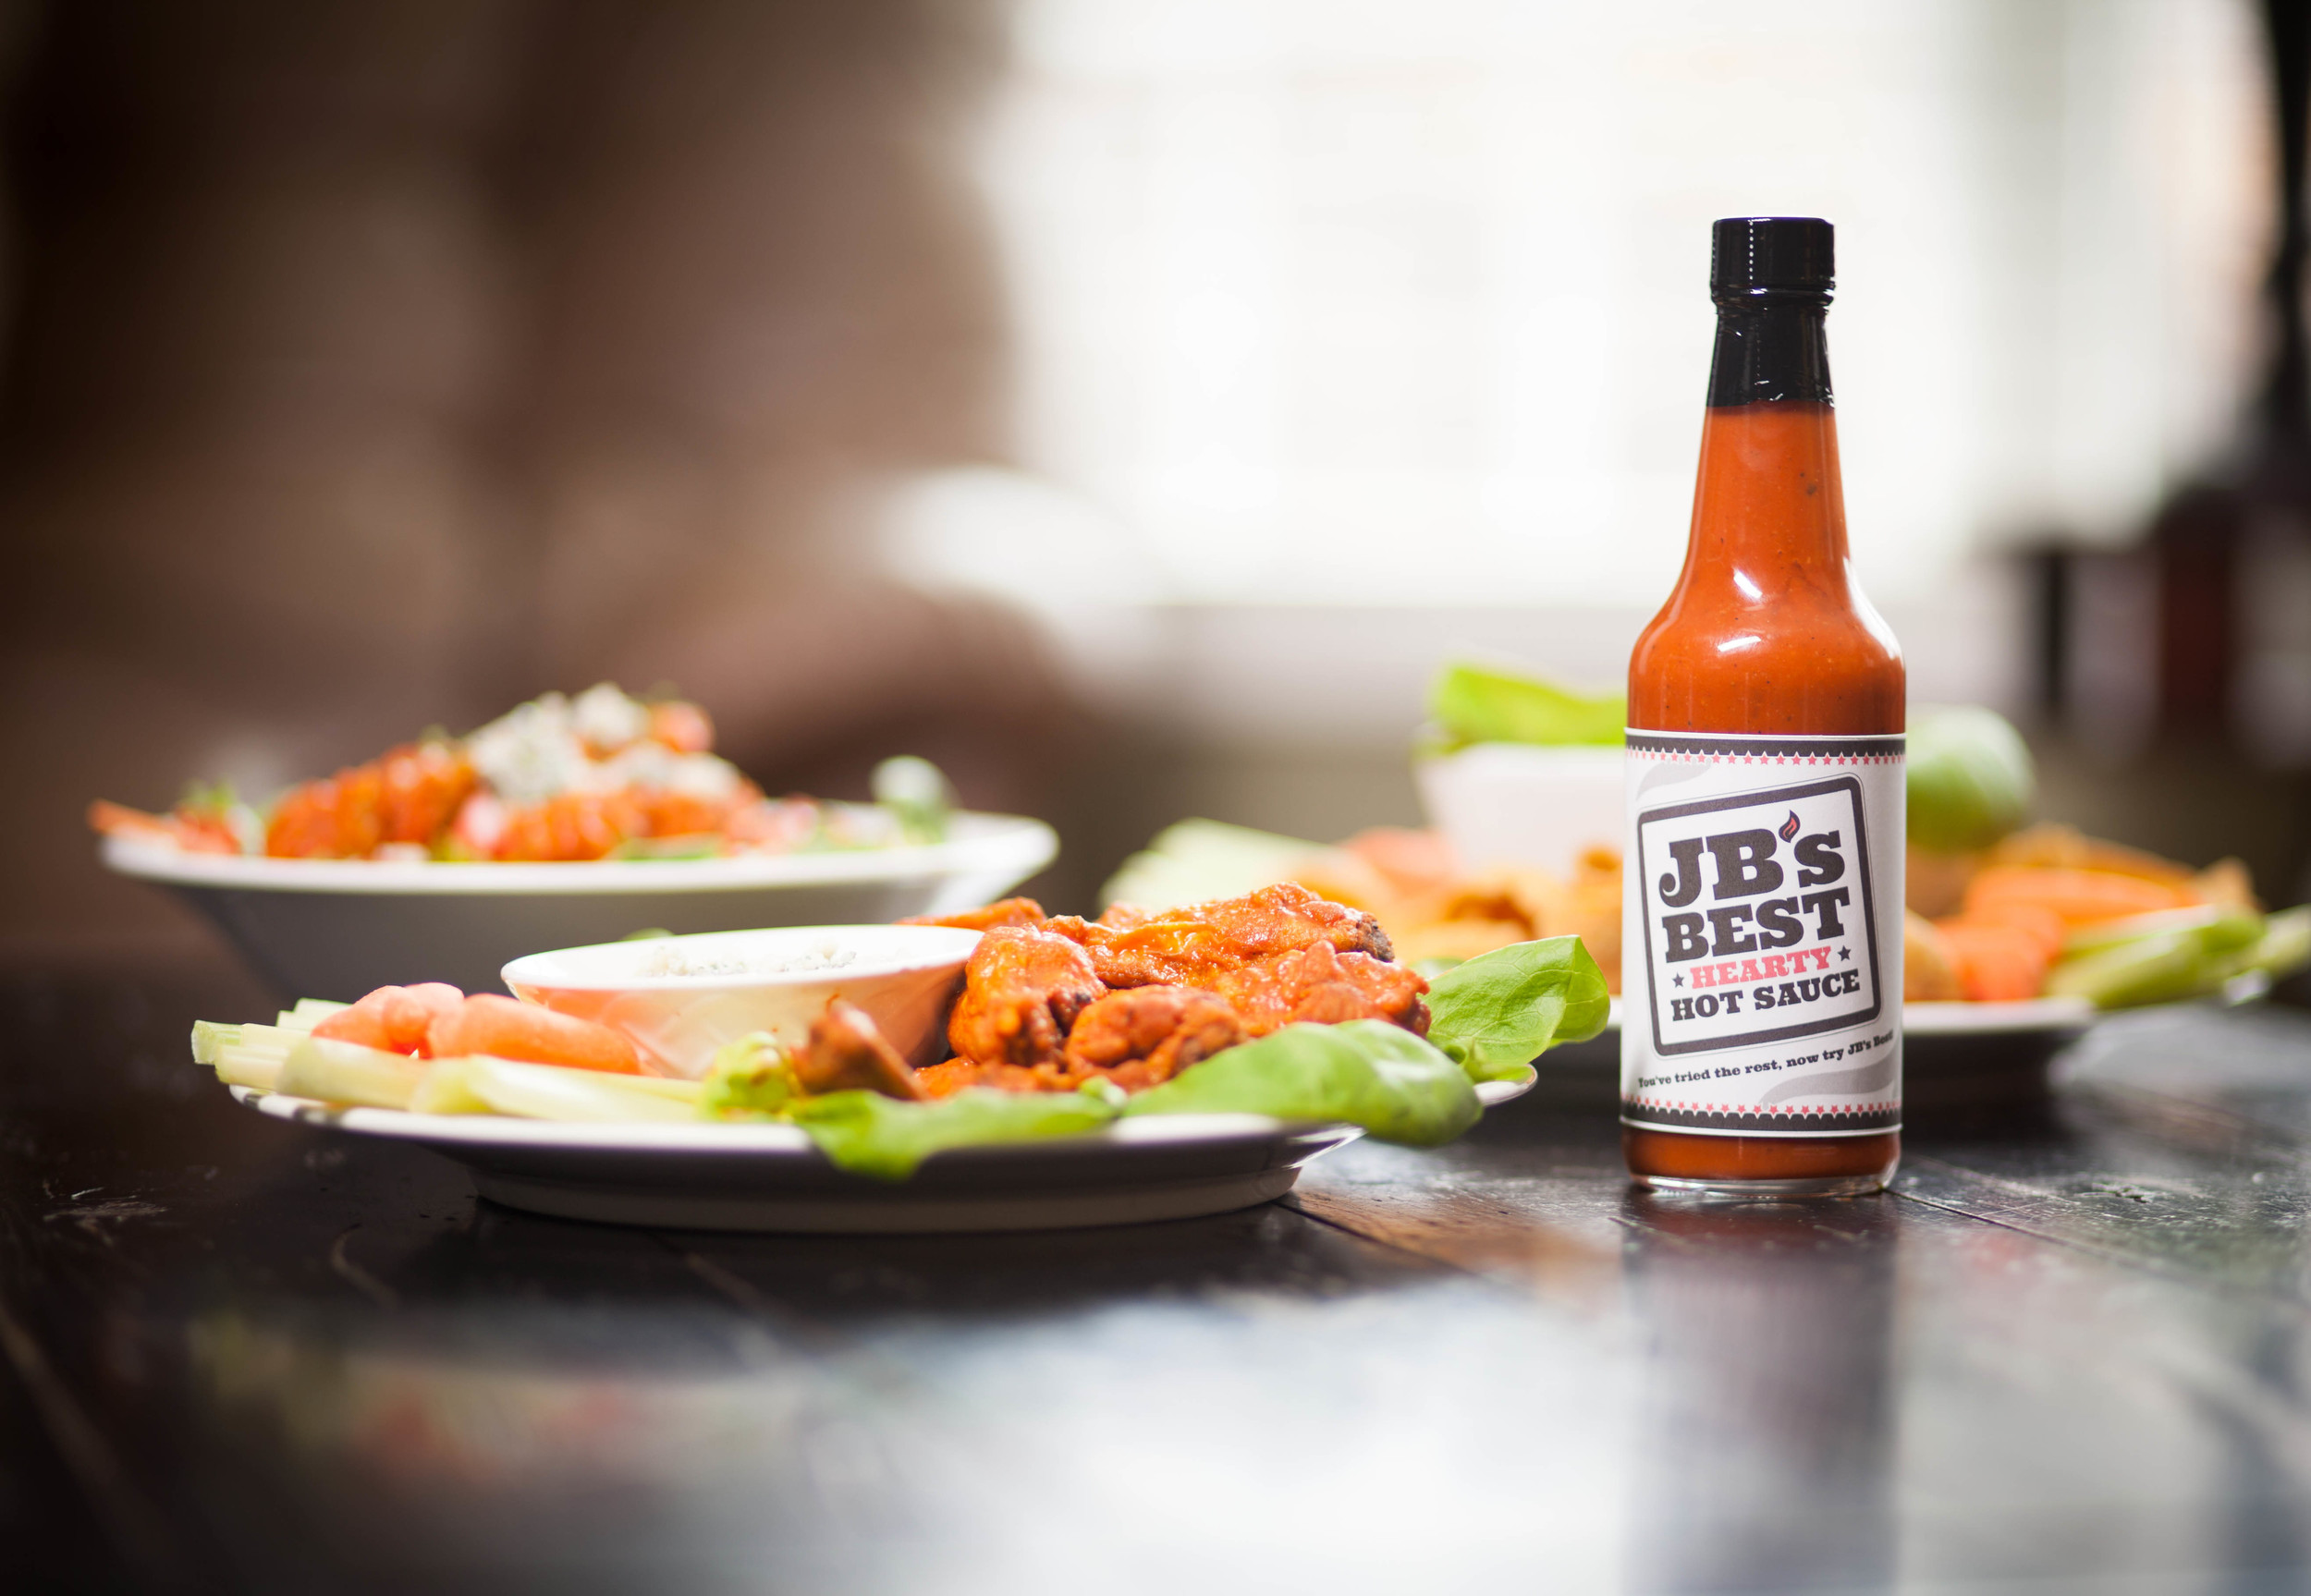 JBs-Best-Hearty-Hot-Sauce-Recipe-Home-Image.jpg